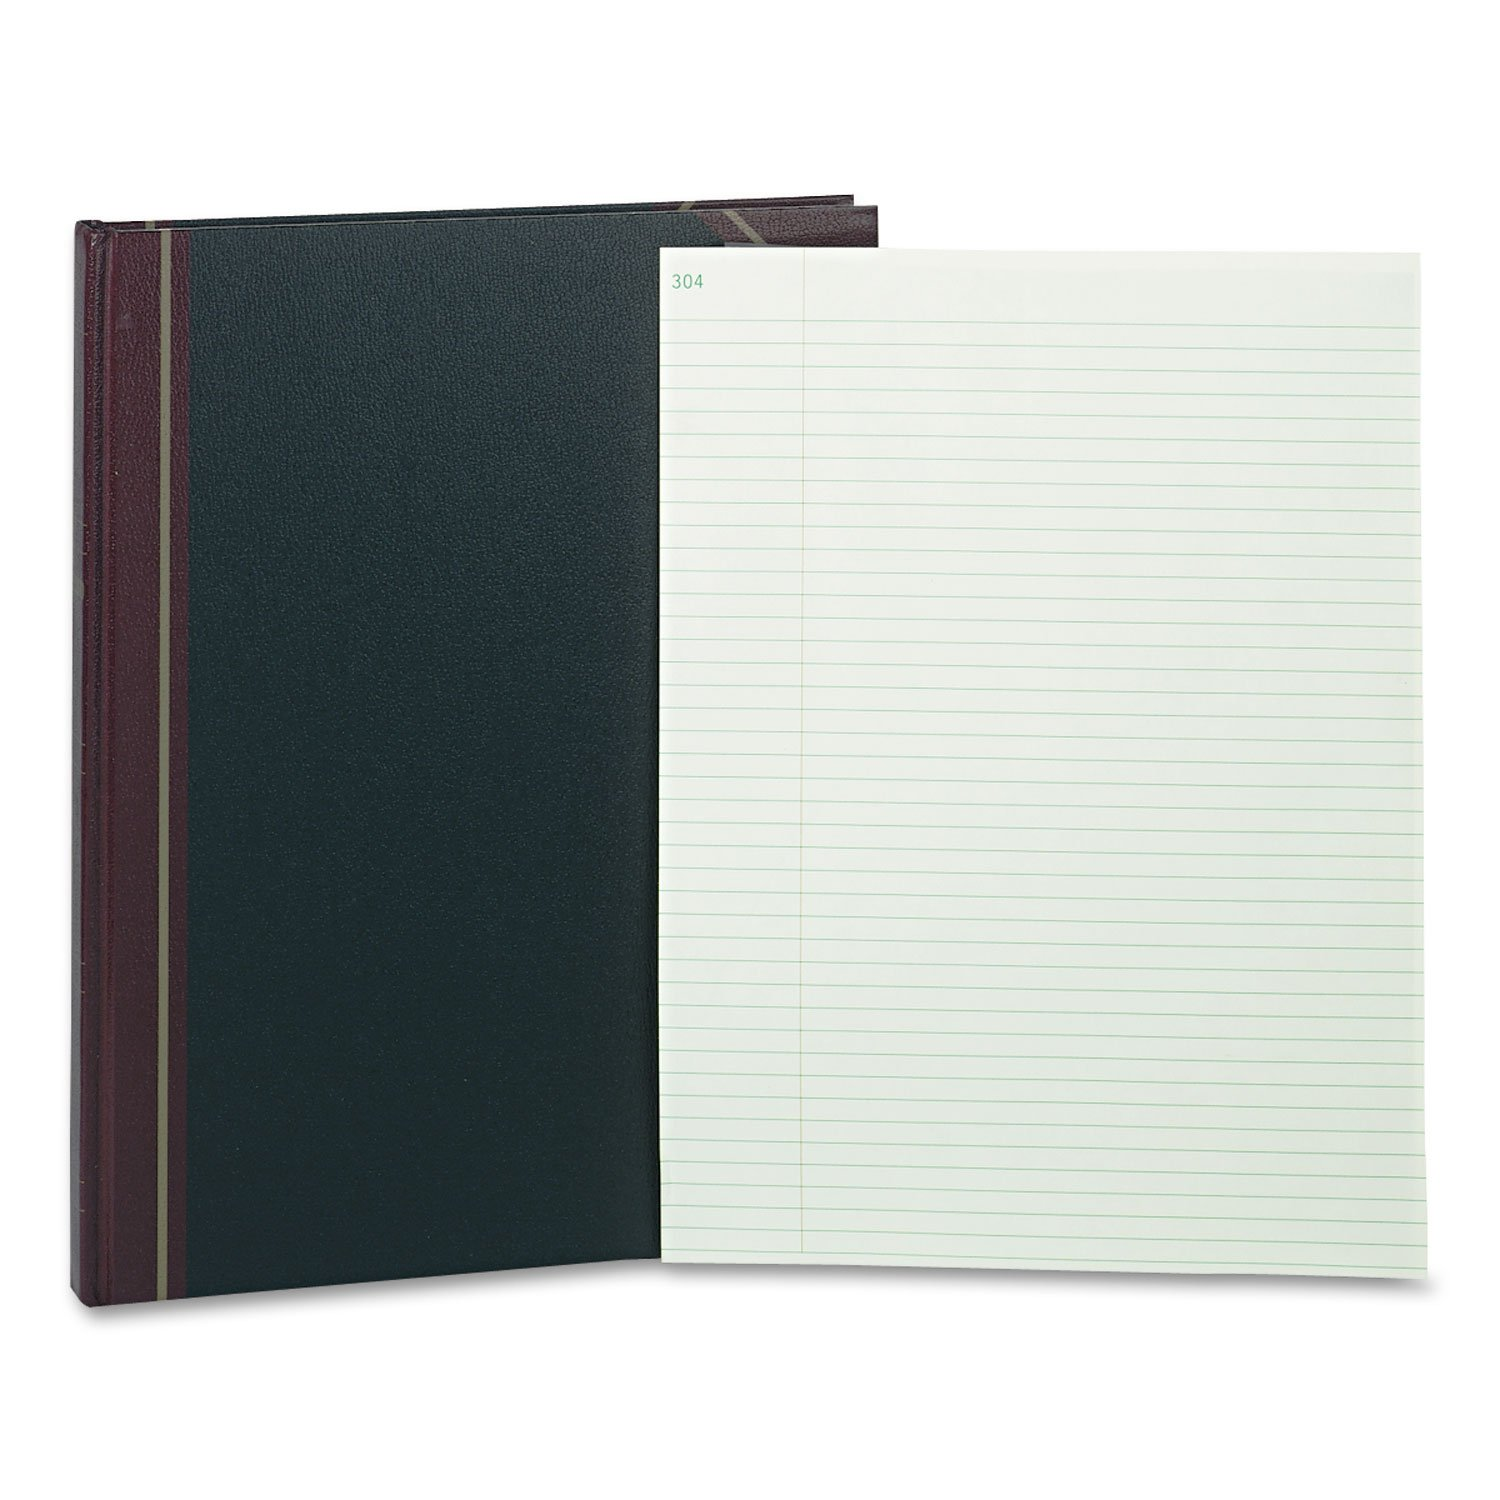 Rediform 58400 Texhide Record-Ruled Book 14-1/4 x 11-1/4 Eye-Ease GN 300 Sheets